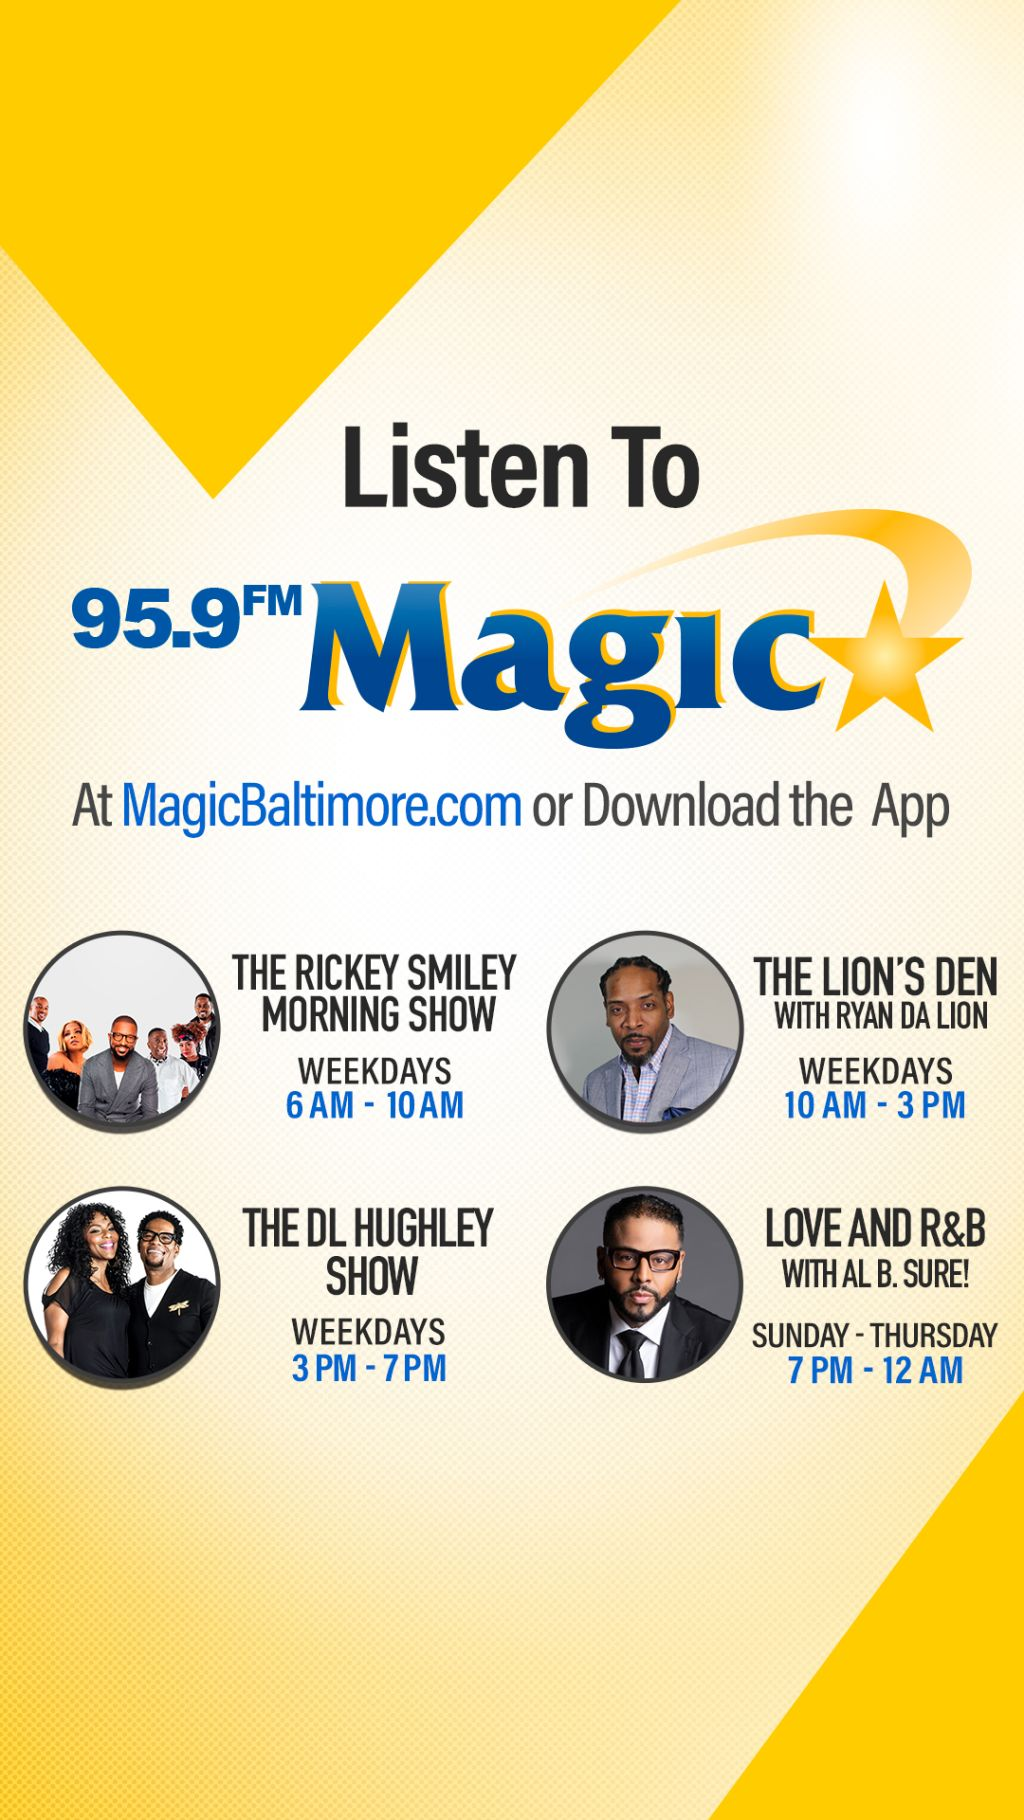 Magic 95.9 Show Schedule